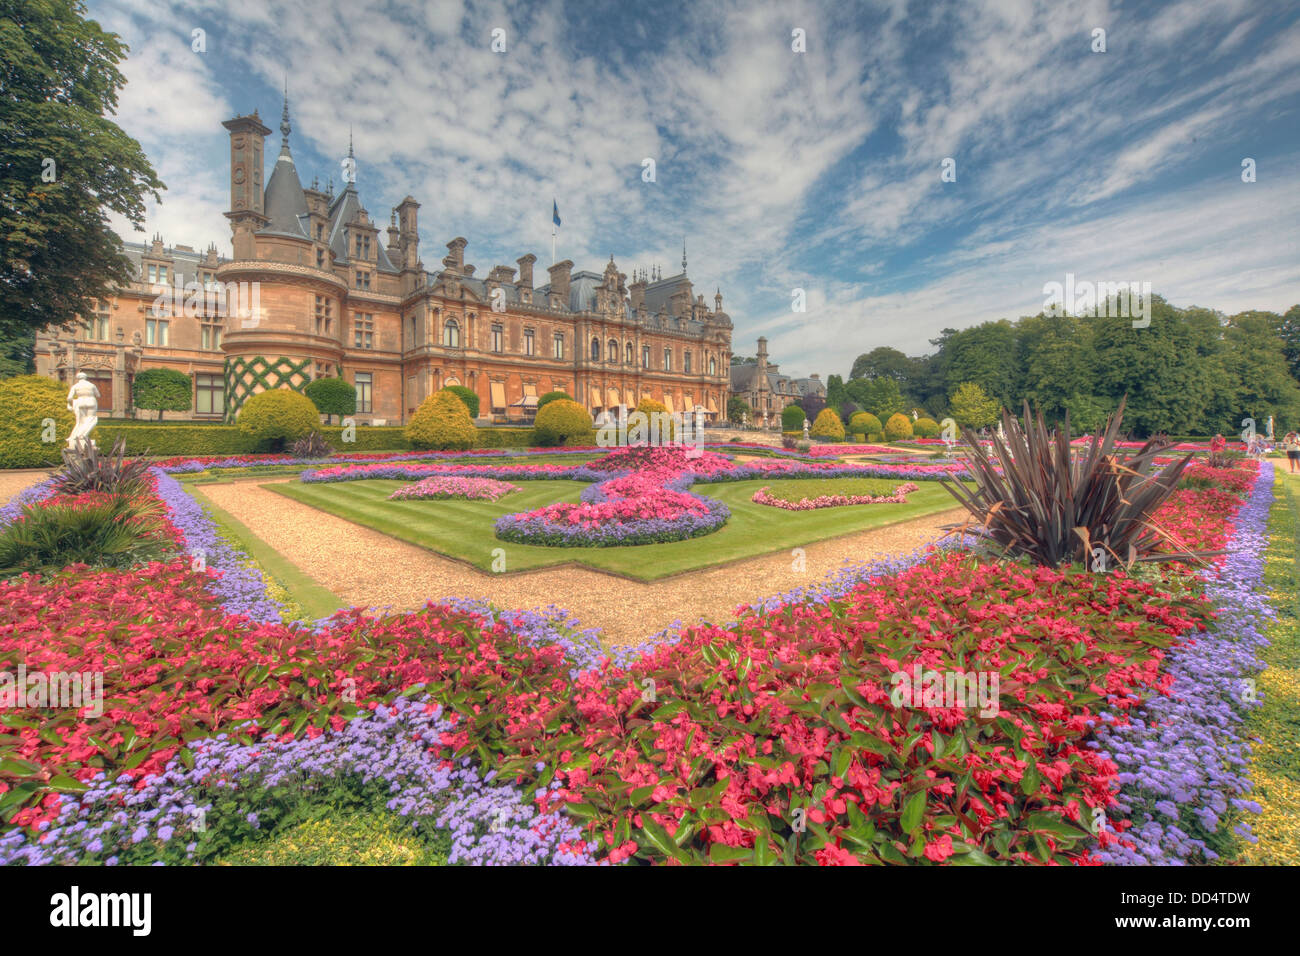 Panorama from Waddesdon Manor, Buckinghamshire, England Stock Photo